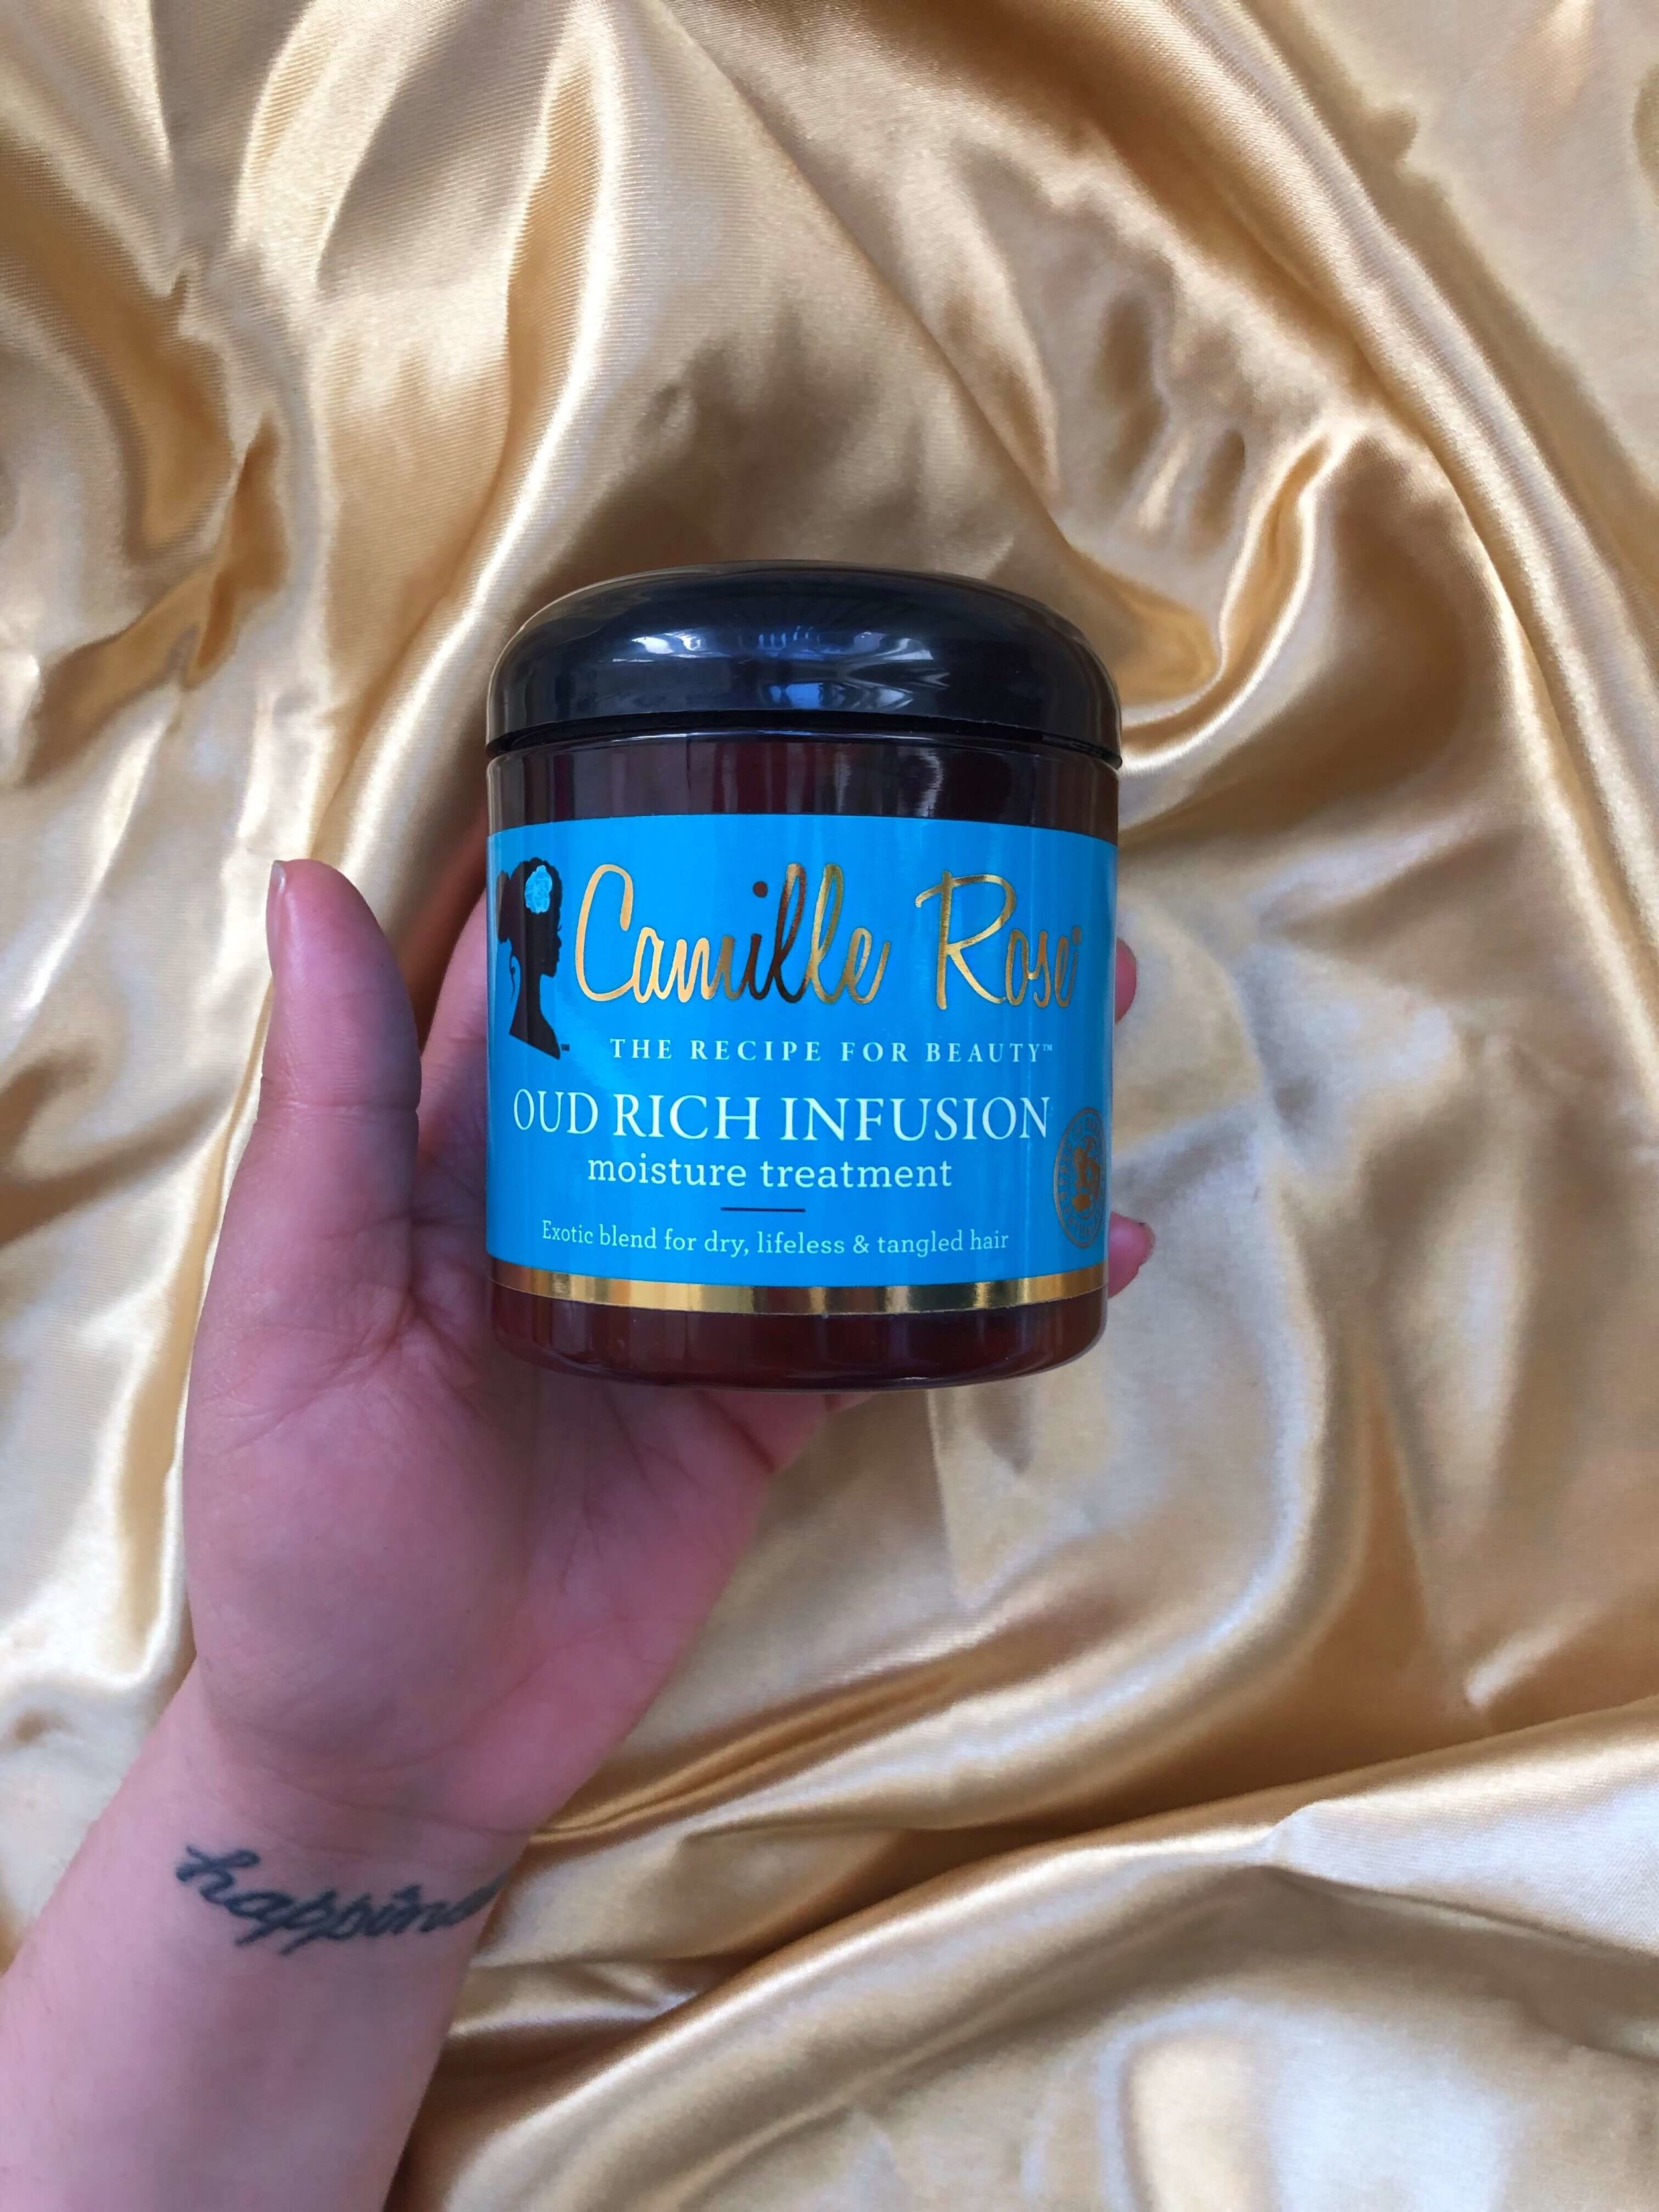 Camille Rose Oud Rich Infusion Moisture Treatment